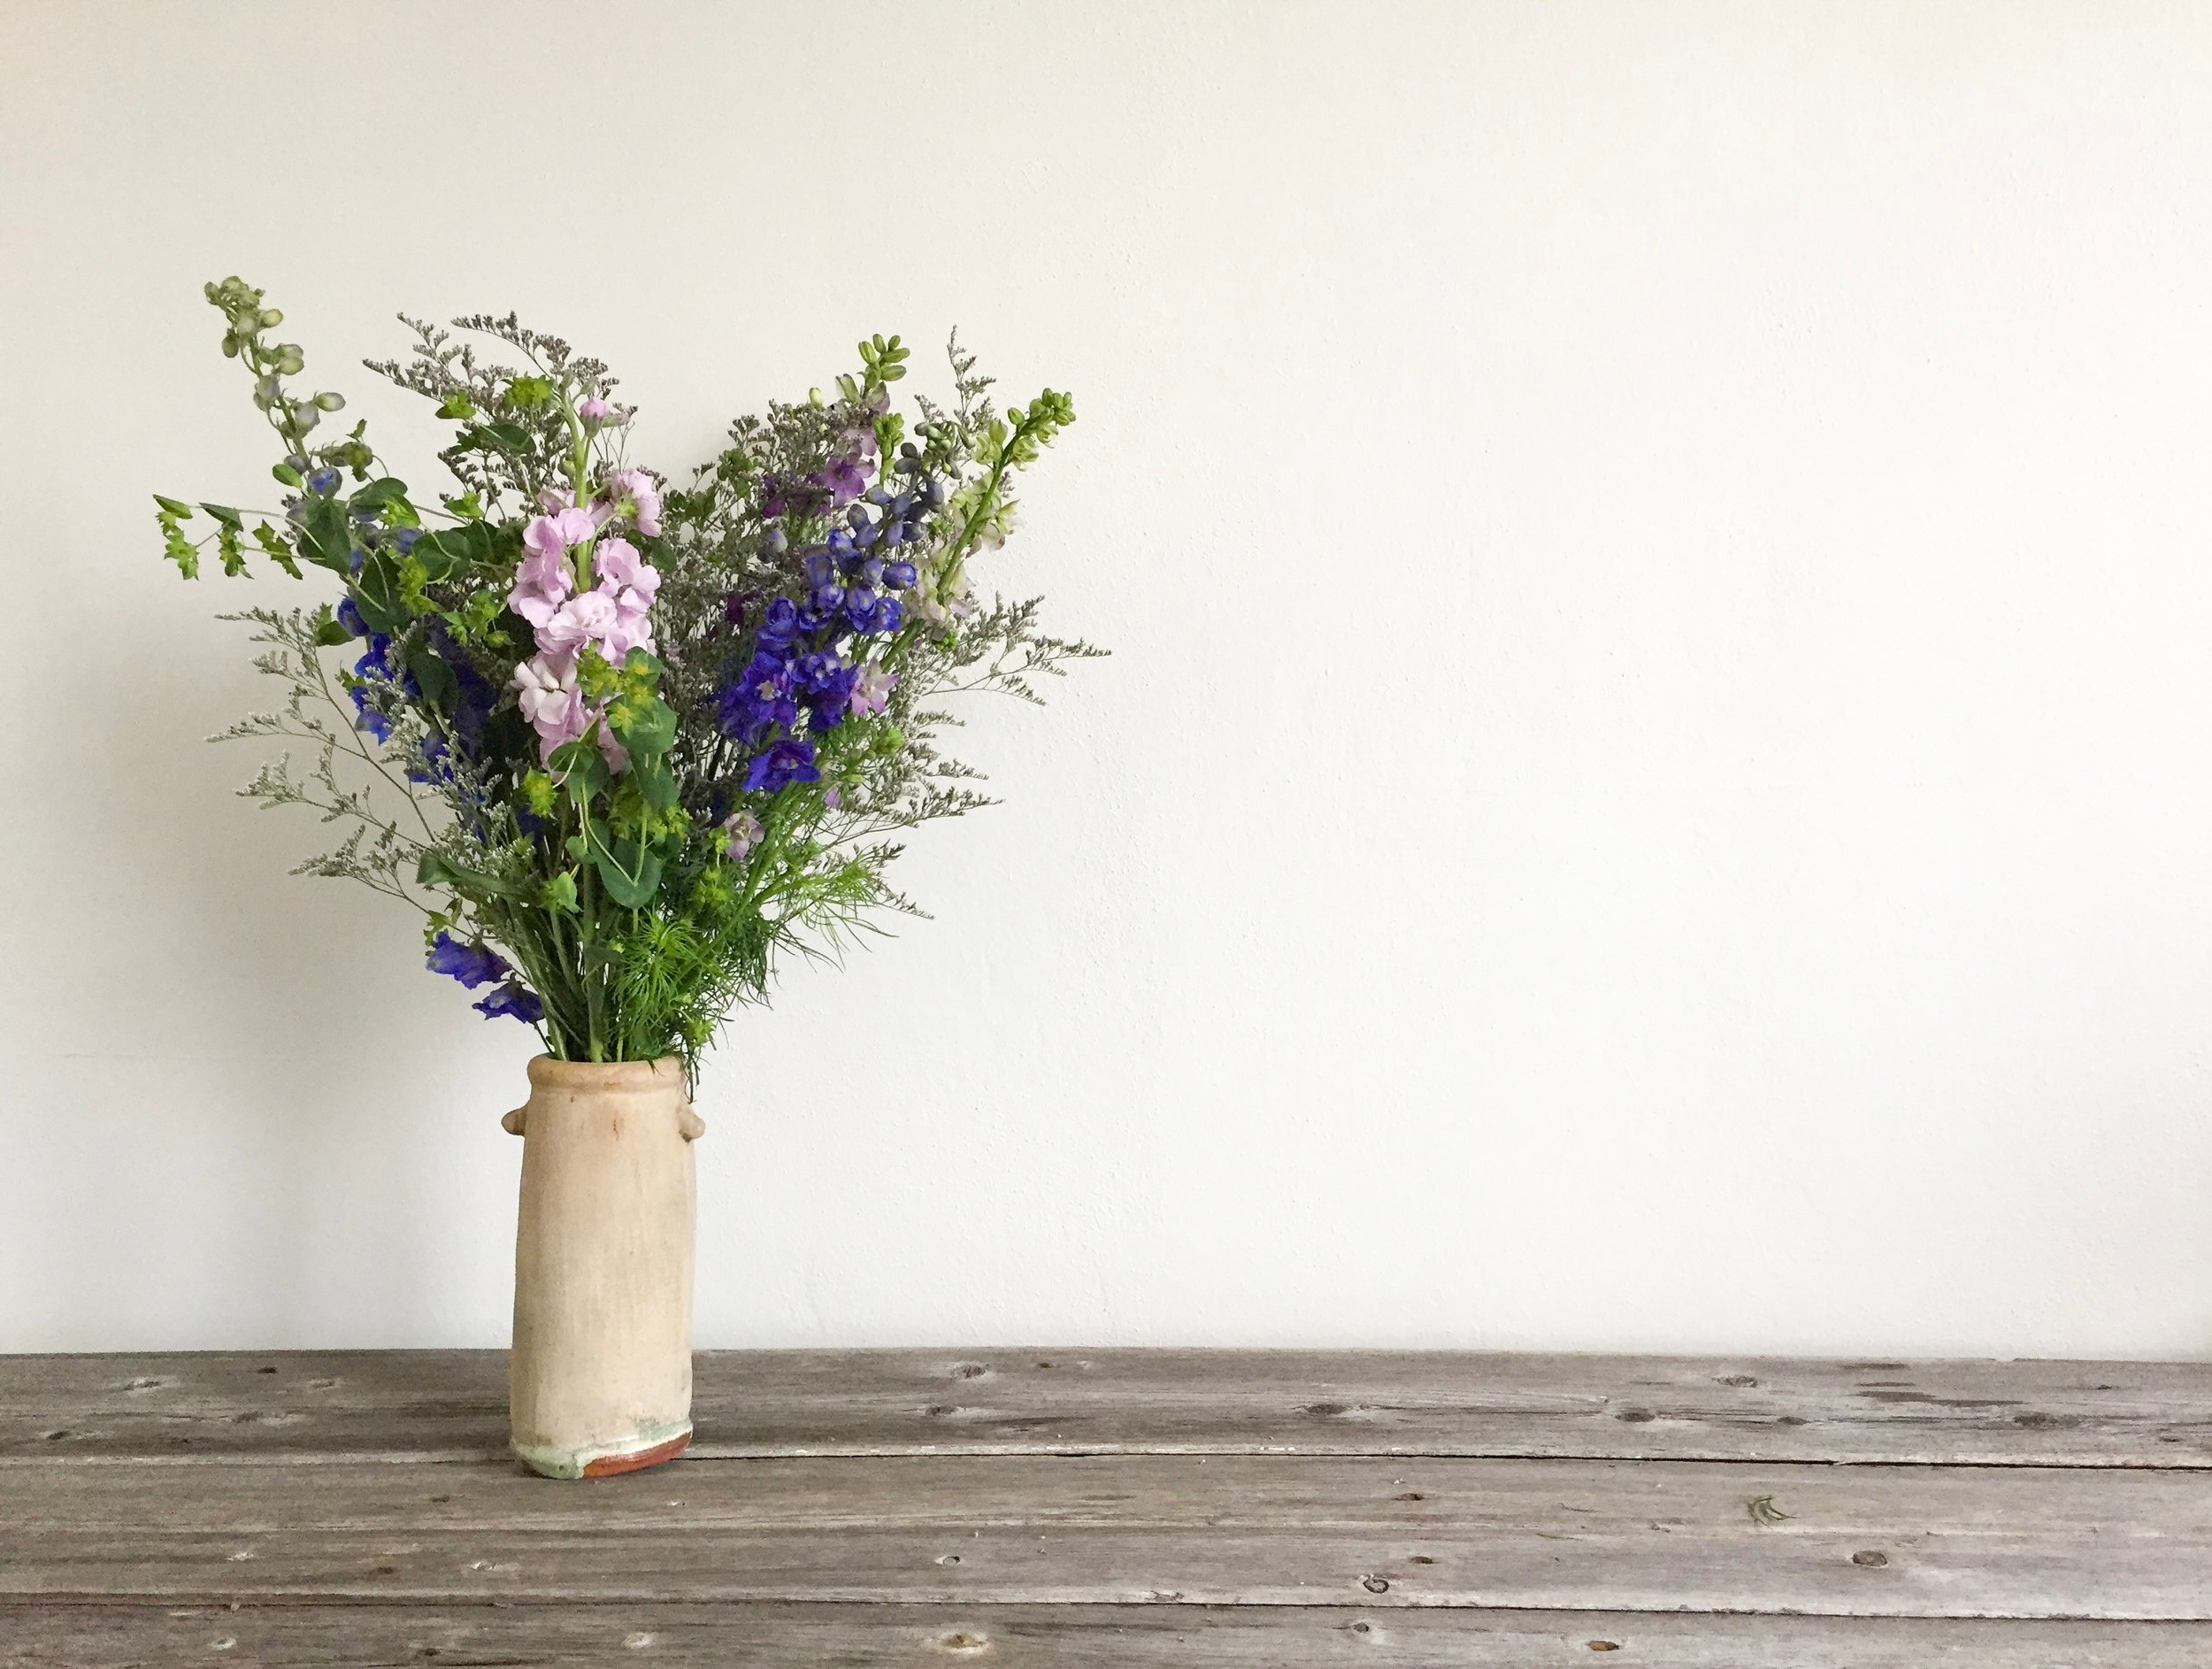 Floral Workshops - Looking for a fun activity to do with friends or family? Want to learn to create beautiful, seasonal bouquets? We provide workshops and events you can hold in the comfort of your home, business or school!